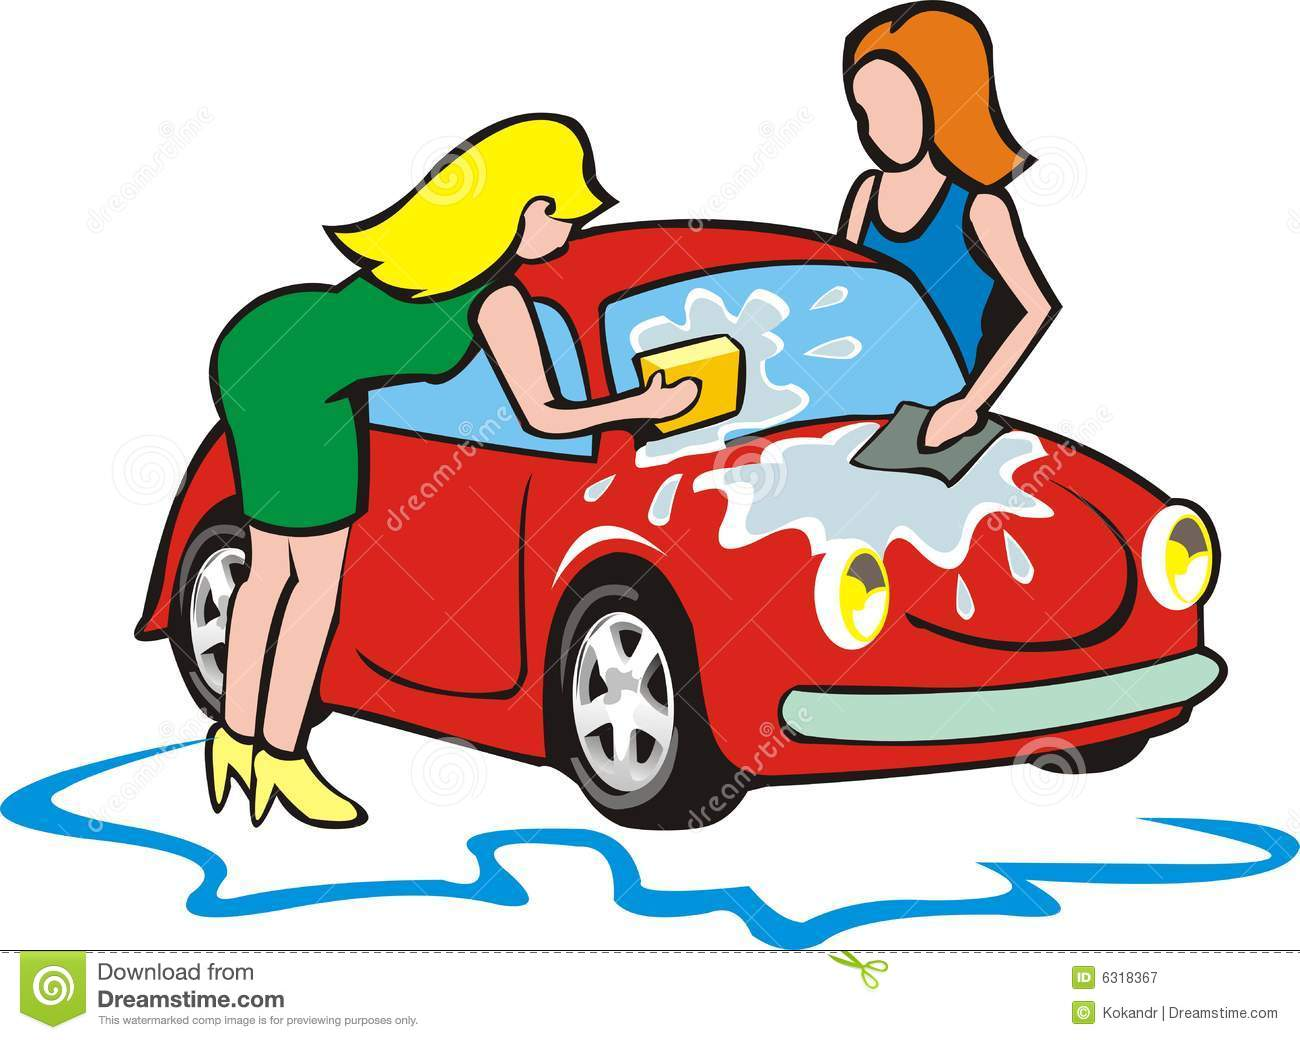 Car Wash Clip Art: Two Girls Wash Small Car Stock Vector. Illustration Of